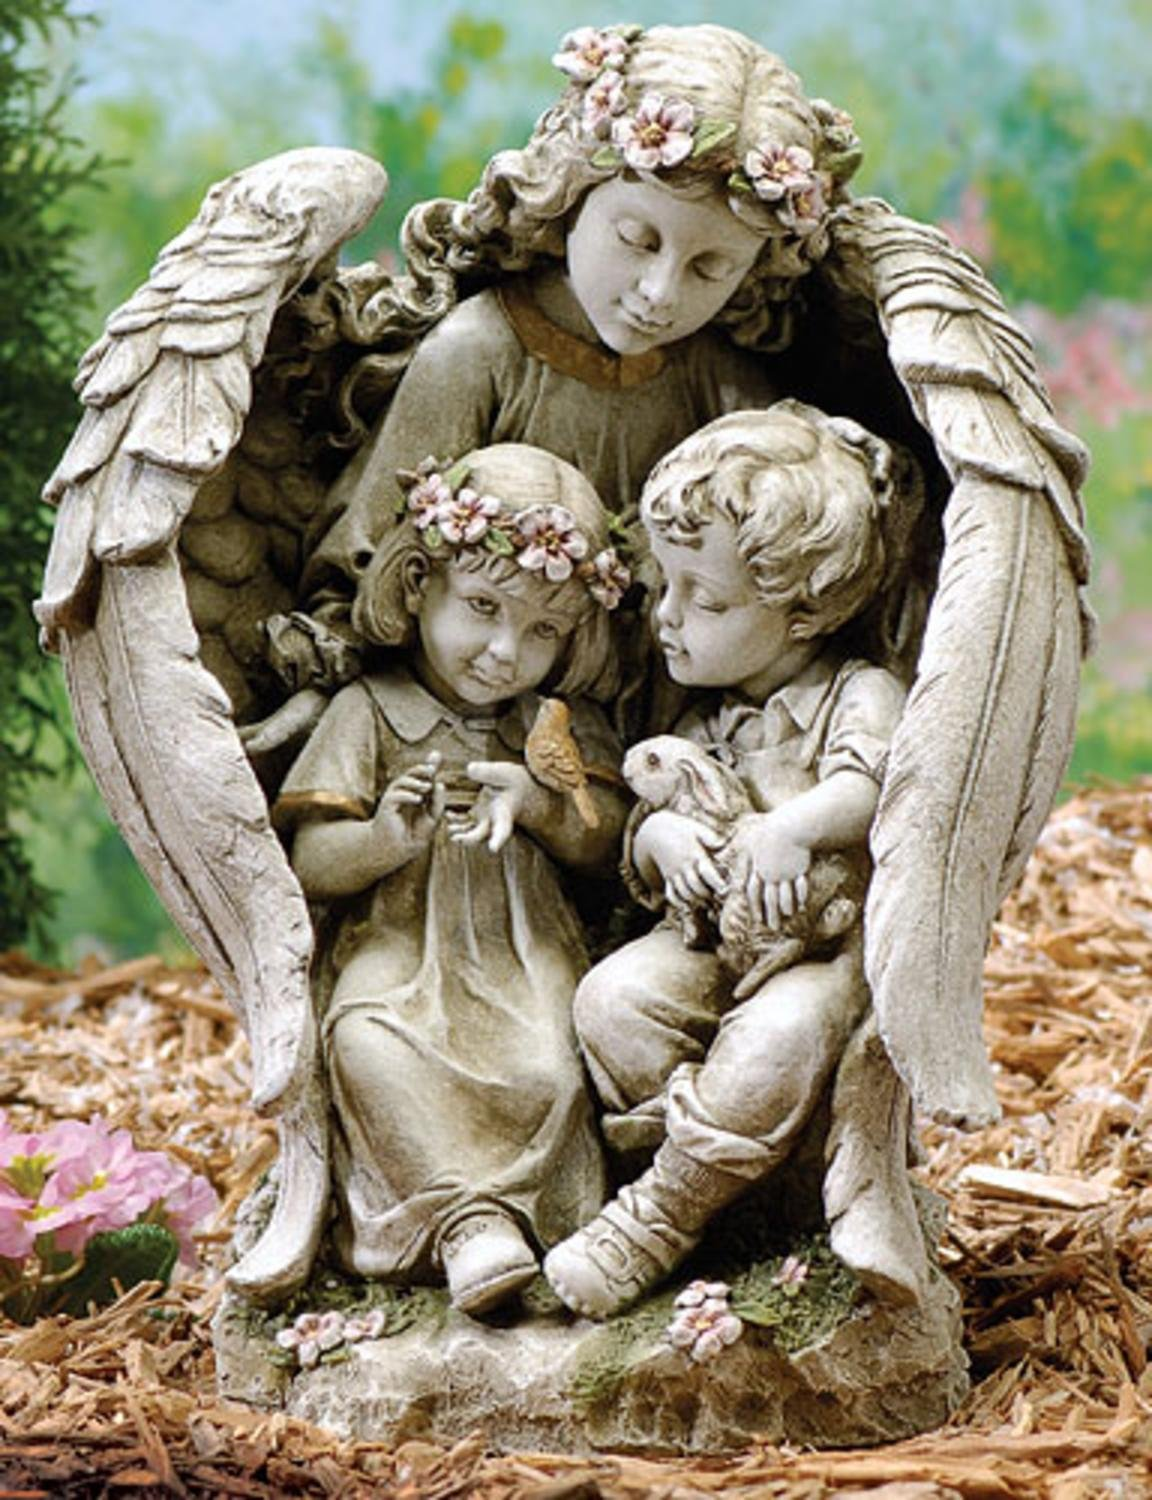 16'' Joseph's Studio Angel with Children Outdoor Garden Statue by Roman